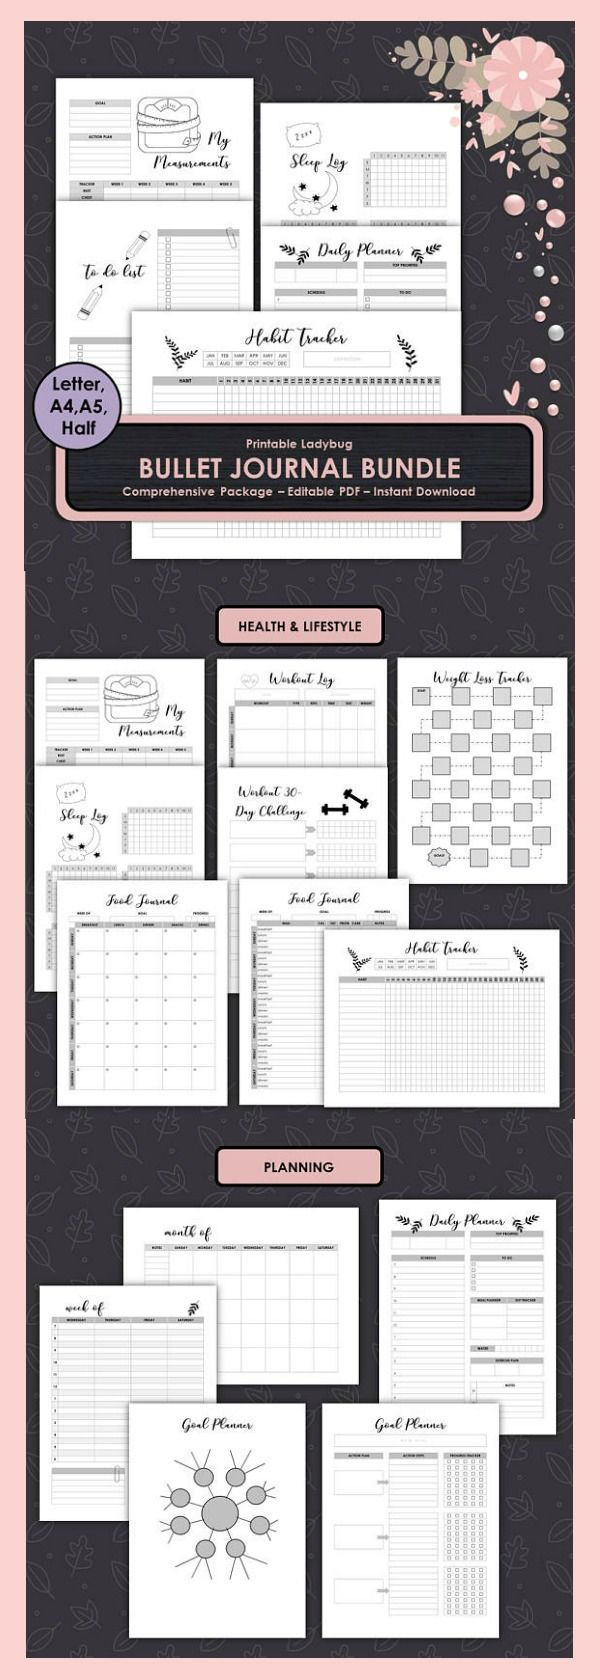 Save time getting organized and instantly print this beautiful bullet journal by PrintableLadybug ~ Bullet Journal,Printable Bullet Journal,Graph Paper,Dot Grid,Bullet Journal Notebook,Printable Bujo,Bullet Journal Template #affiliate #bujoprintable #printableplanner #bulletjournals